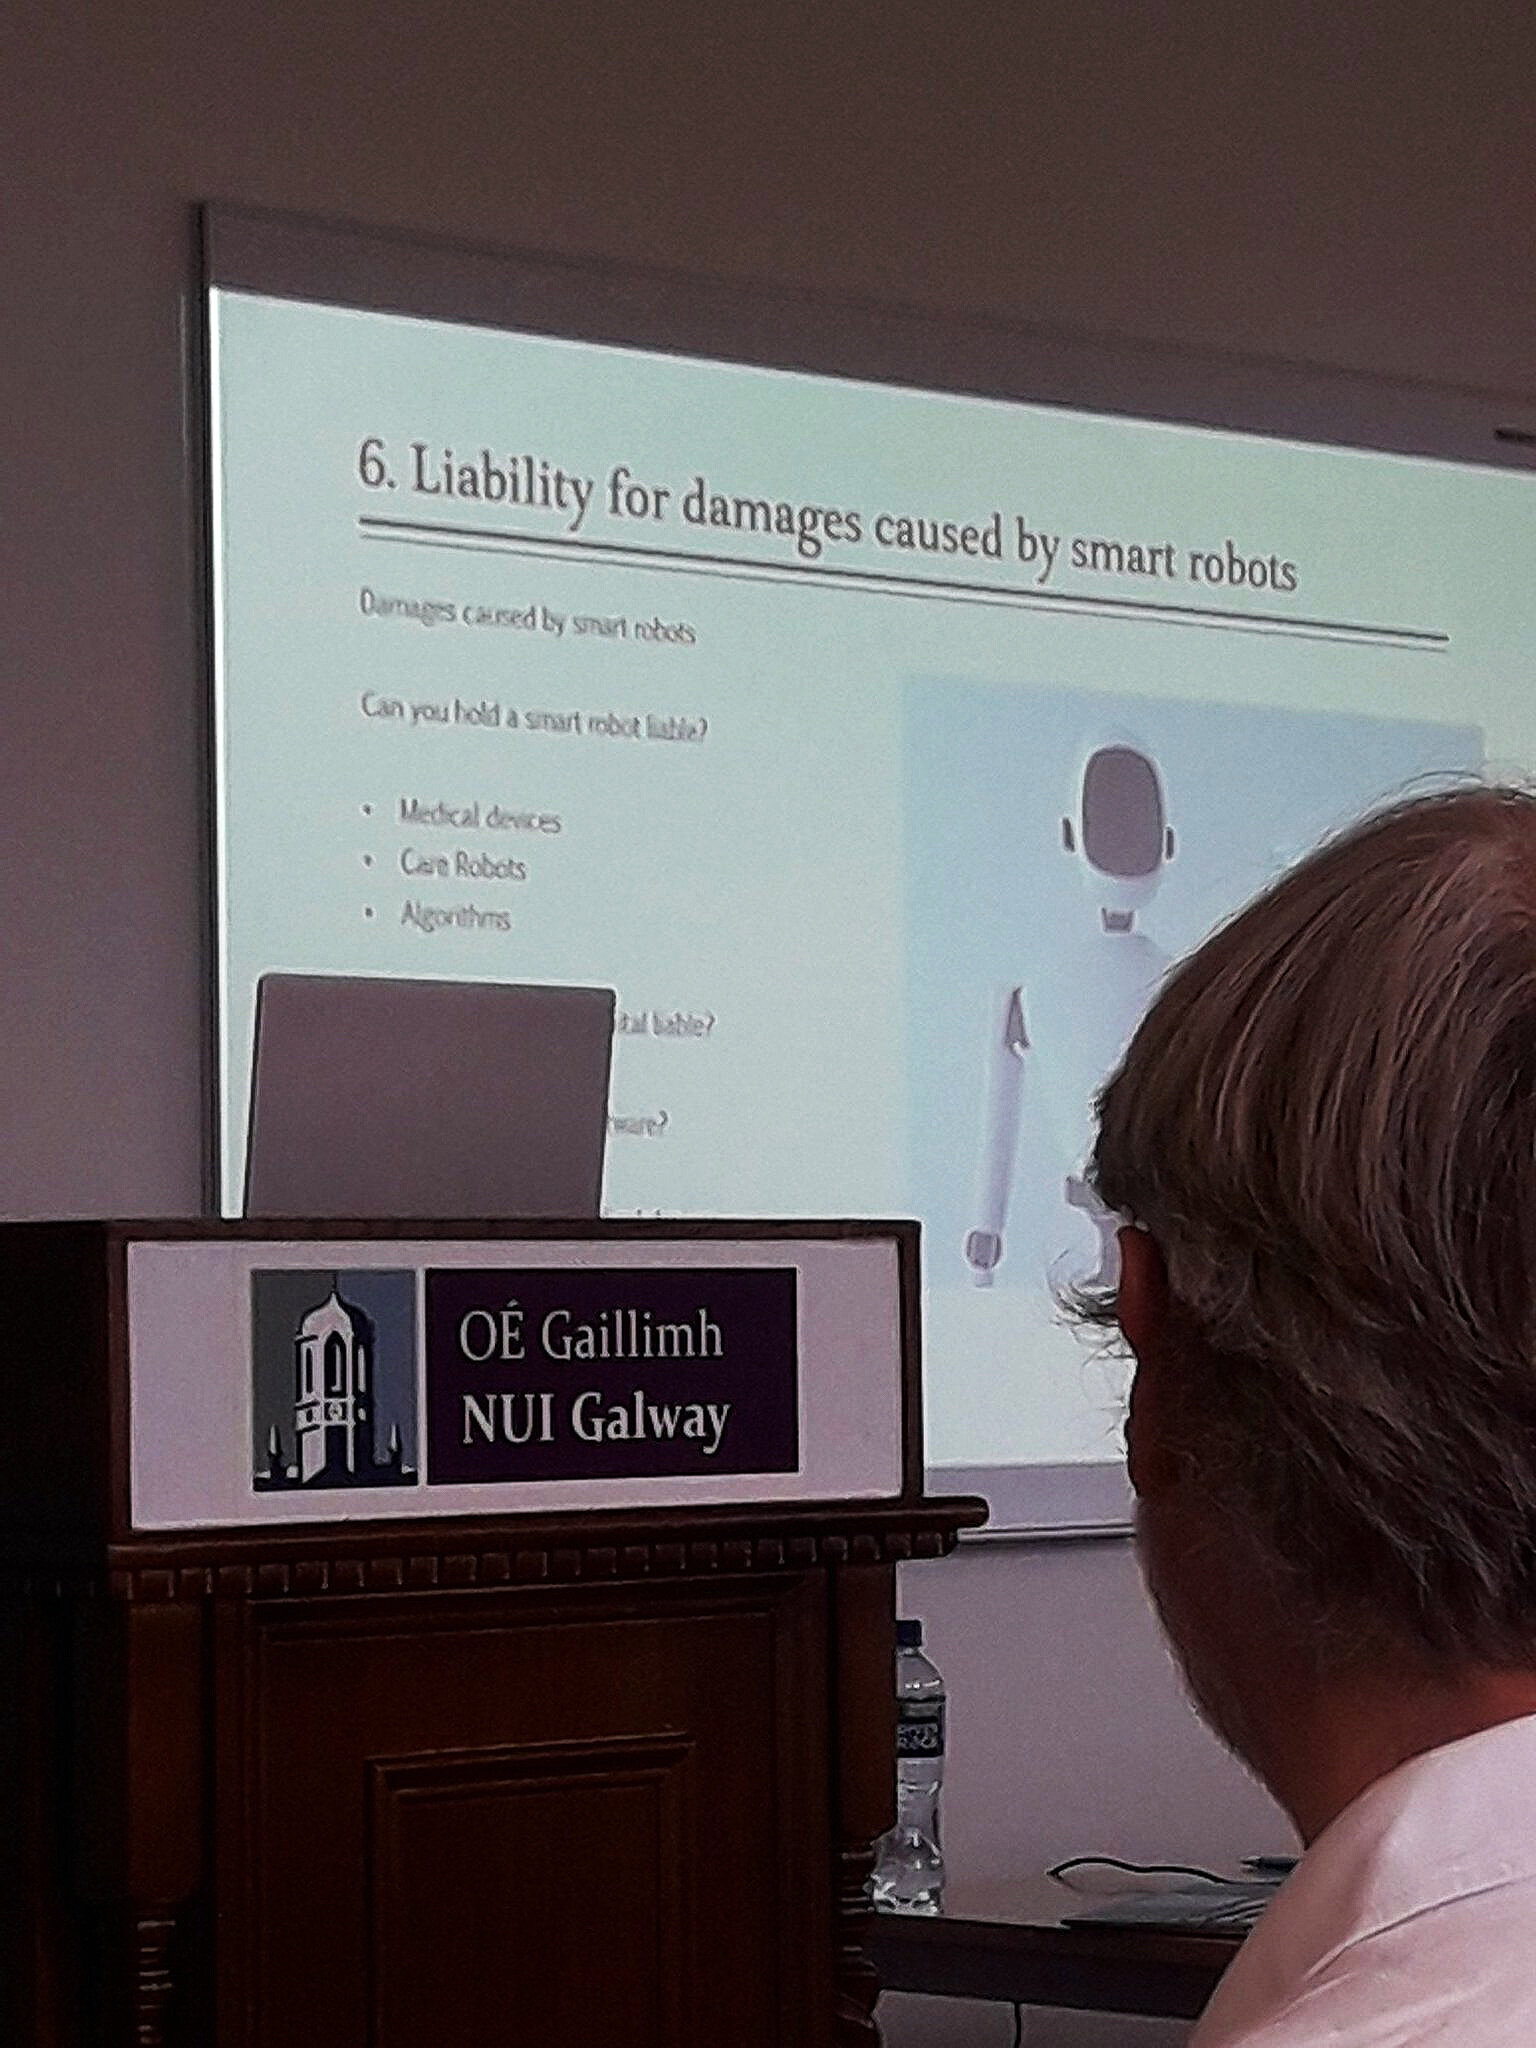 Liability  for damages caused by smart robots: who is liable for misdiagnosis by an AI algorithm? Photo by Niall Phelan